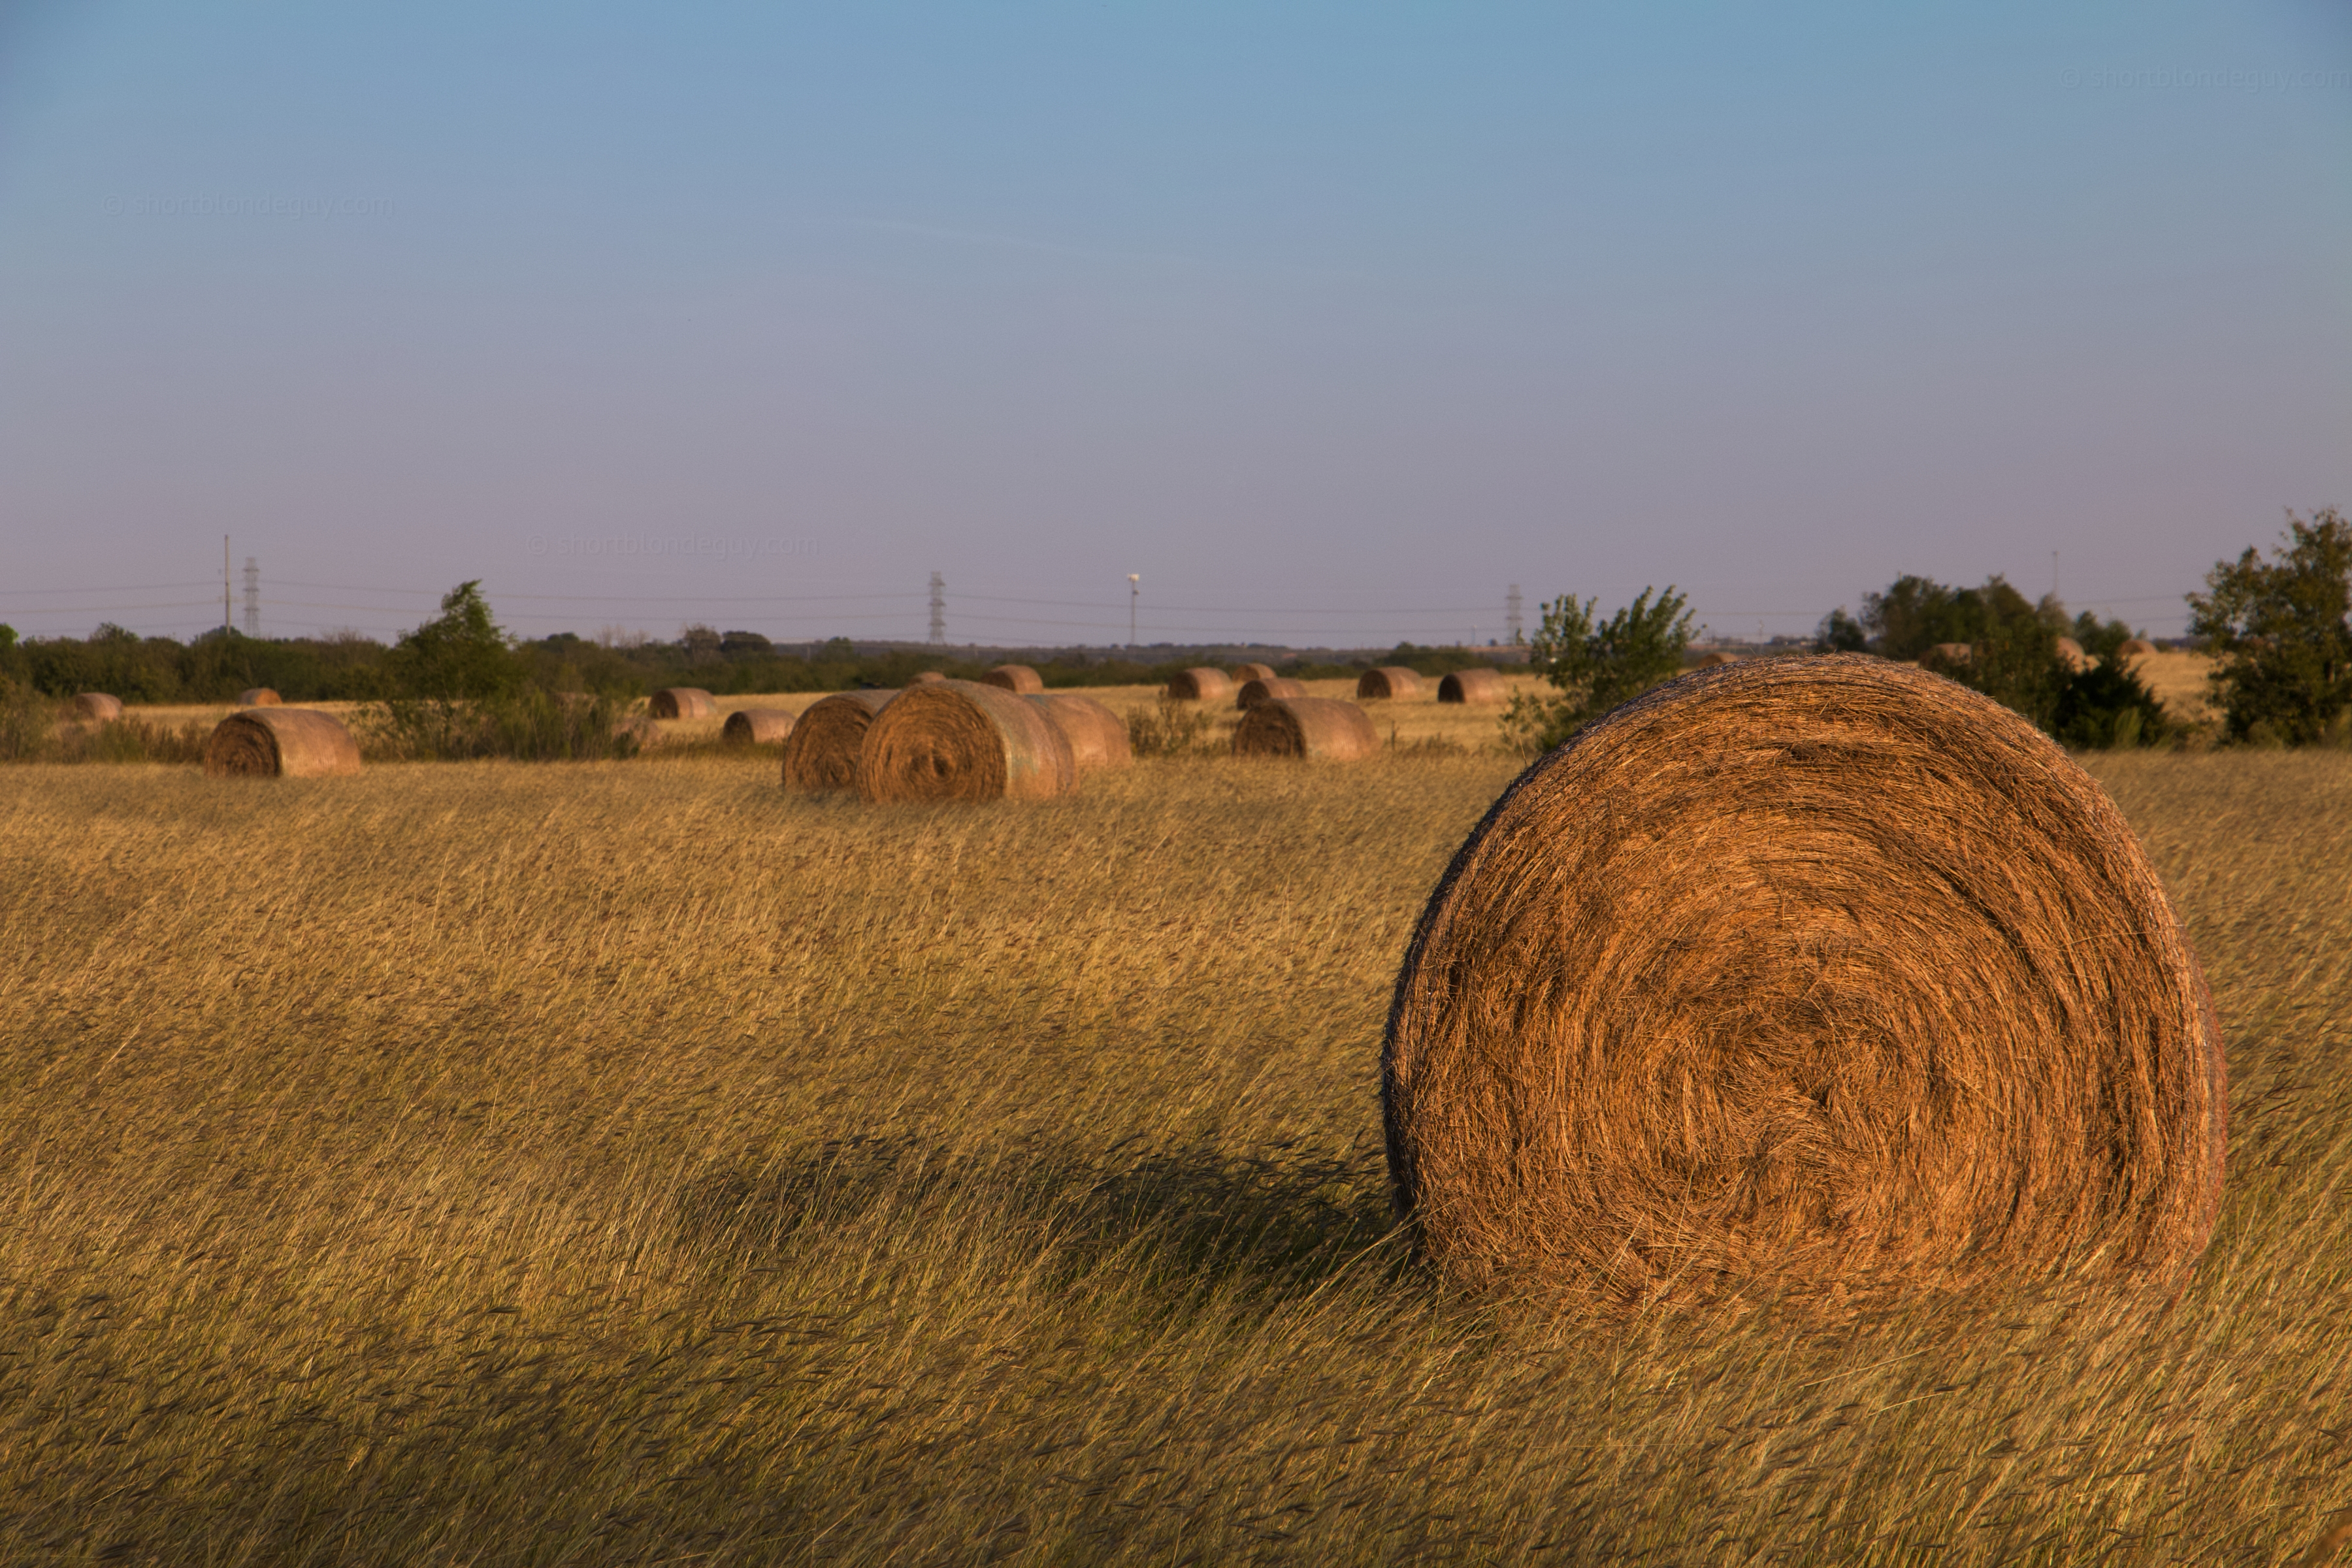 Hay, How Are You?